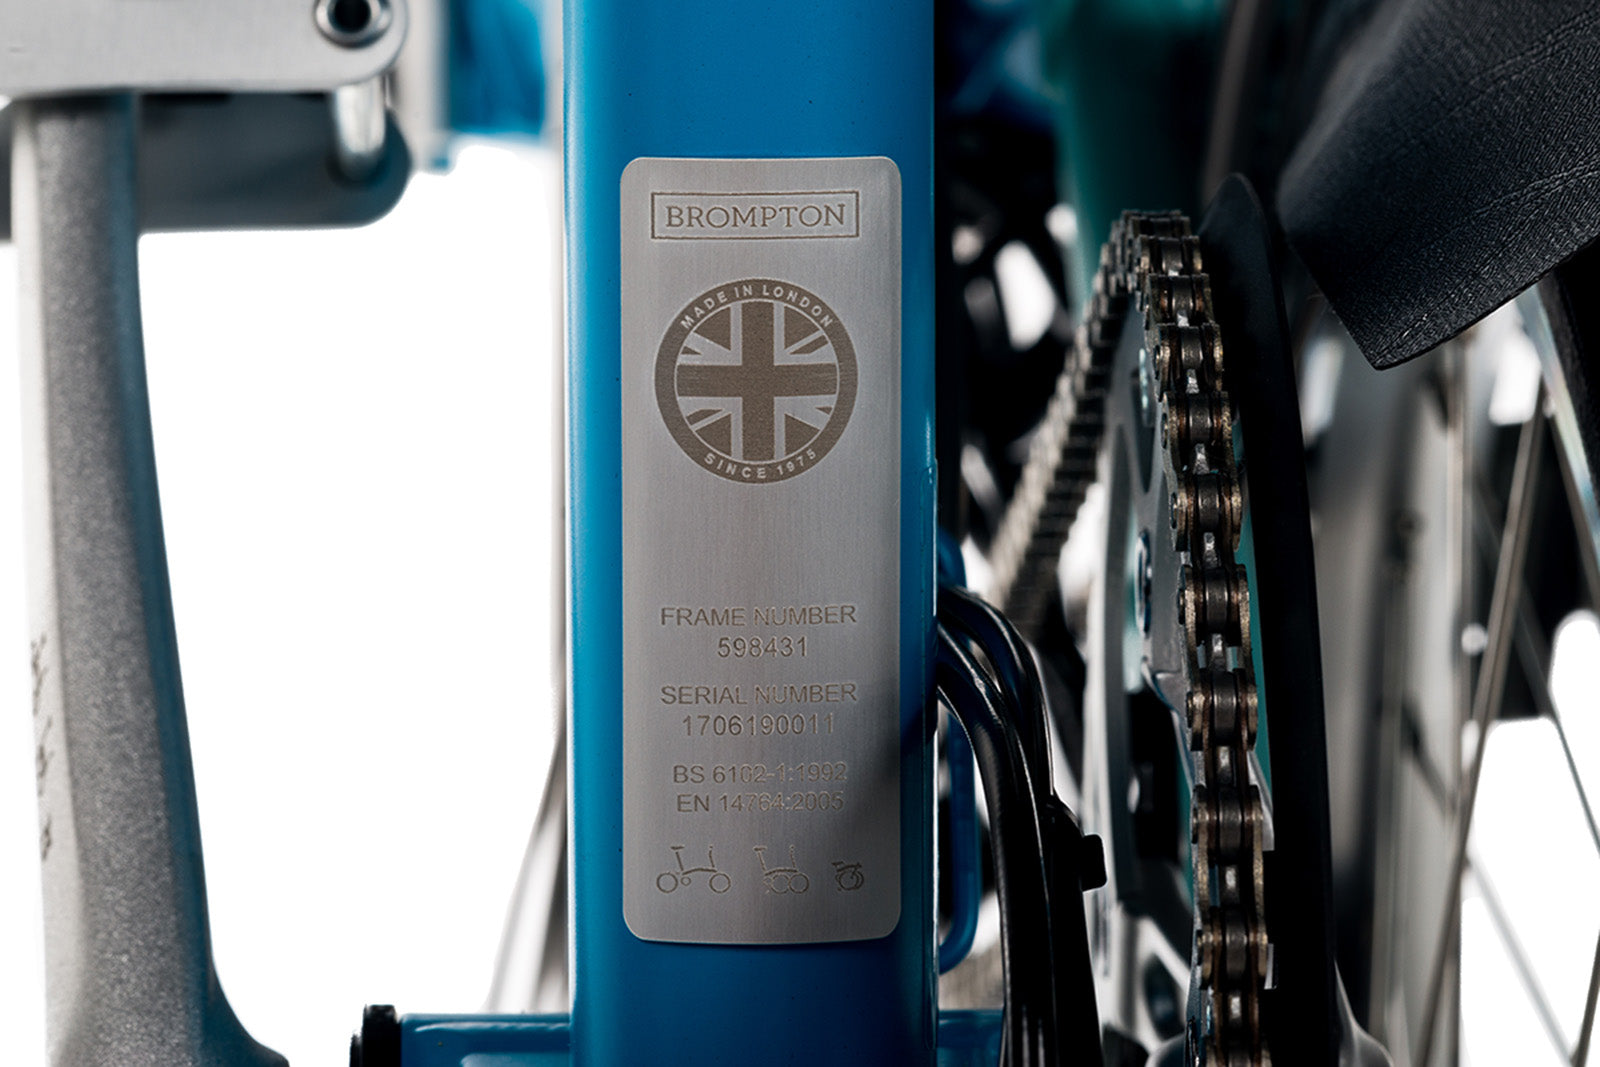 Brompton ID plate is found on the back of the seat tube